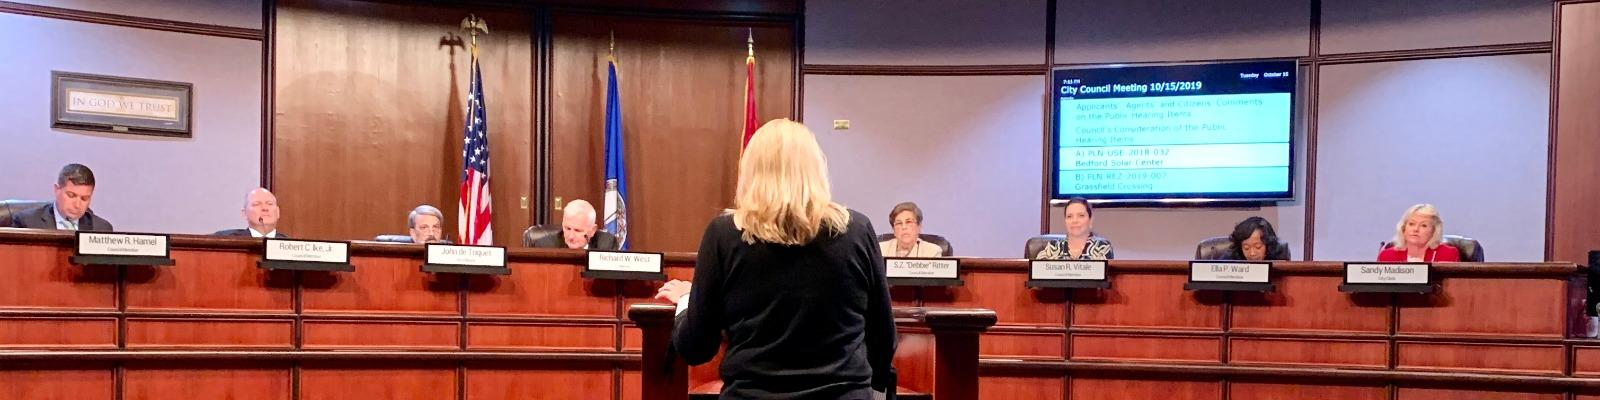 Michele Partridge-Lane, Chesapeake Division Board Chair, addressing the Chesapeake City Council (May 21st meeting) to endorse the Bedford Solar Center. Cover